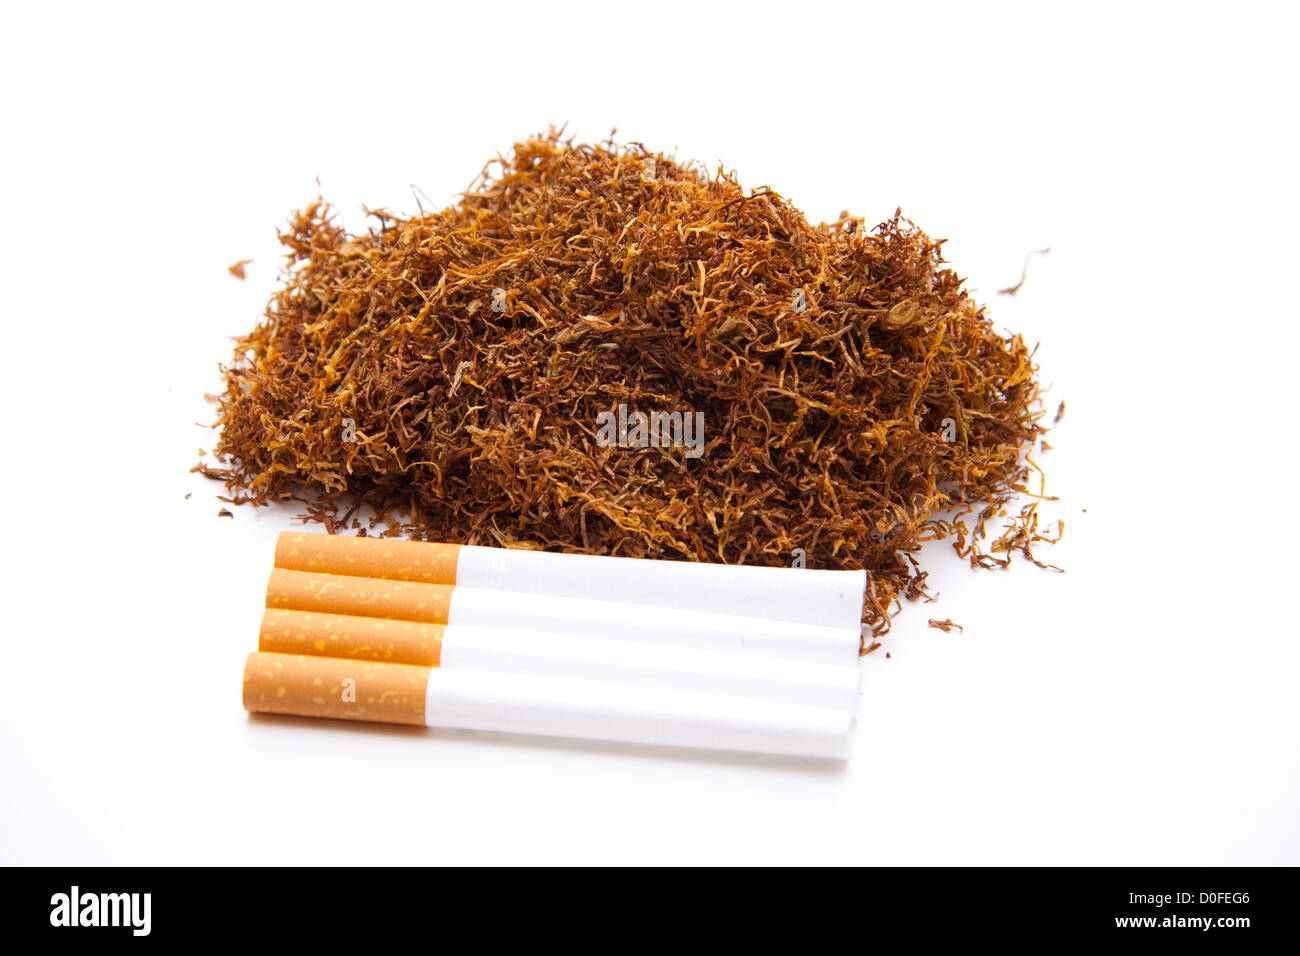 Buy cheap Bristol cigarettes Vogue